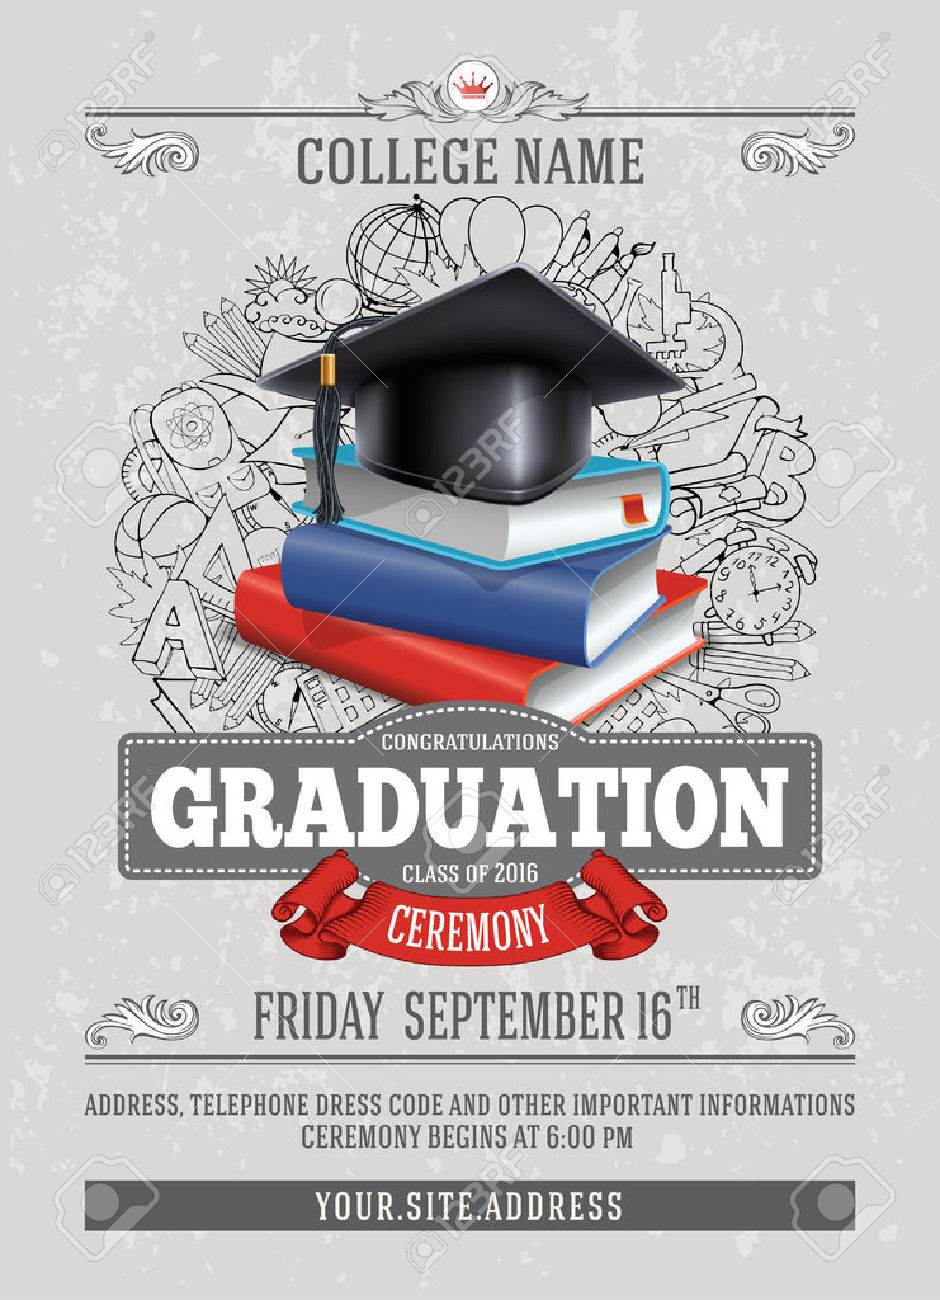 Vector template of announcement or invitation to Graduation ceremony or party with unusual realistic image of Graduation cap and stack of books. There is place for your text. - 69204984